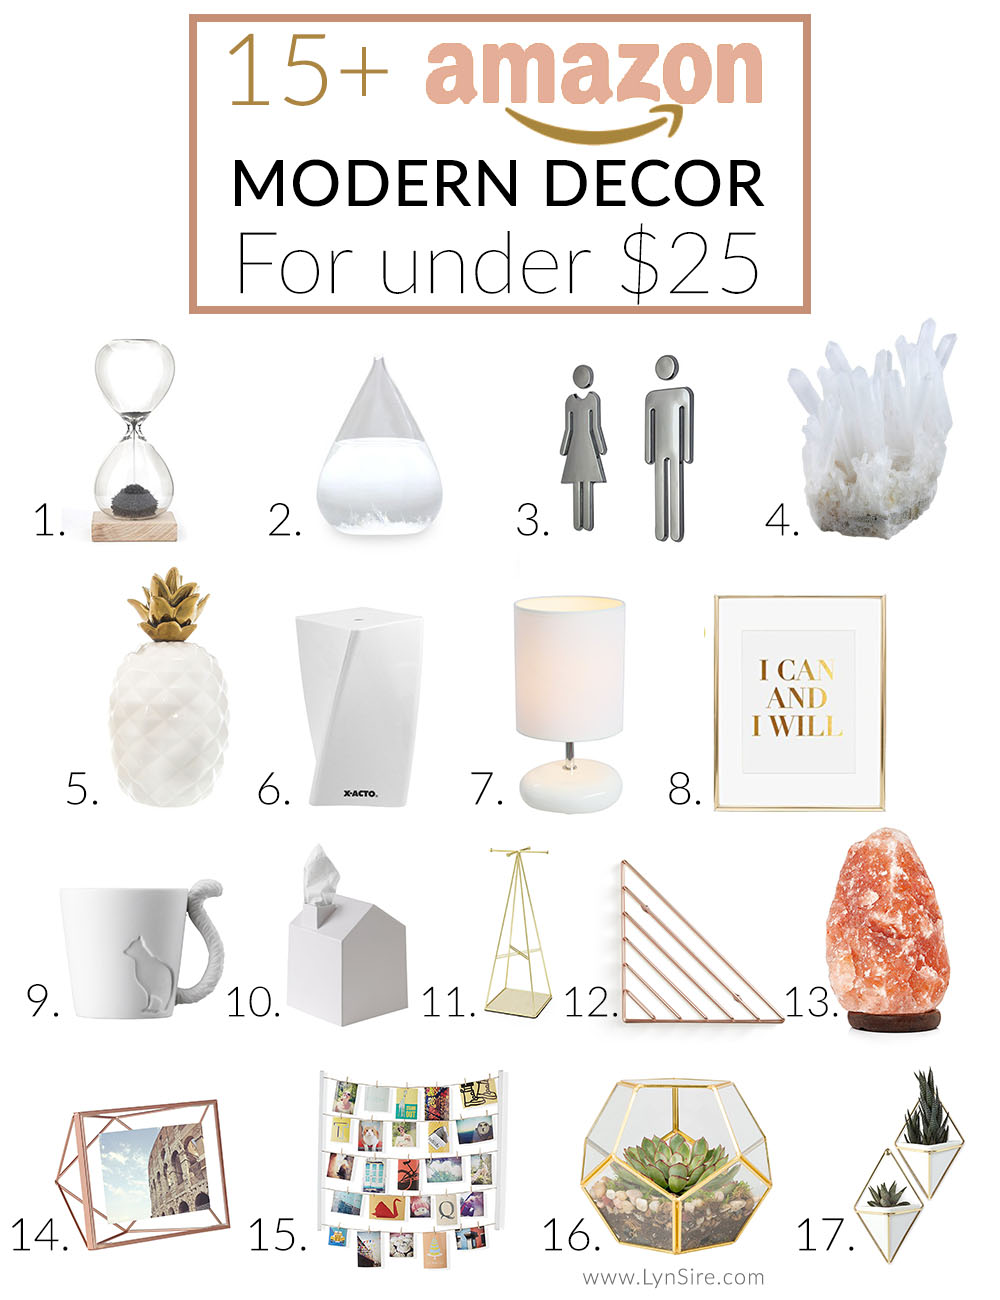 15 modern decor finds on amazon for under 25 lynsire for Home decorations amazon